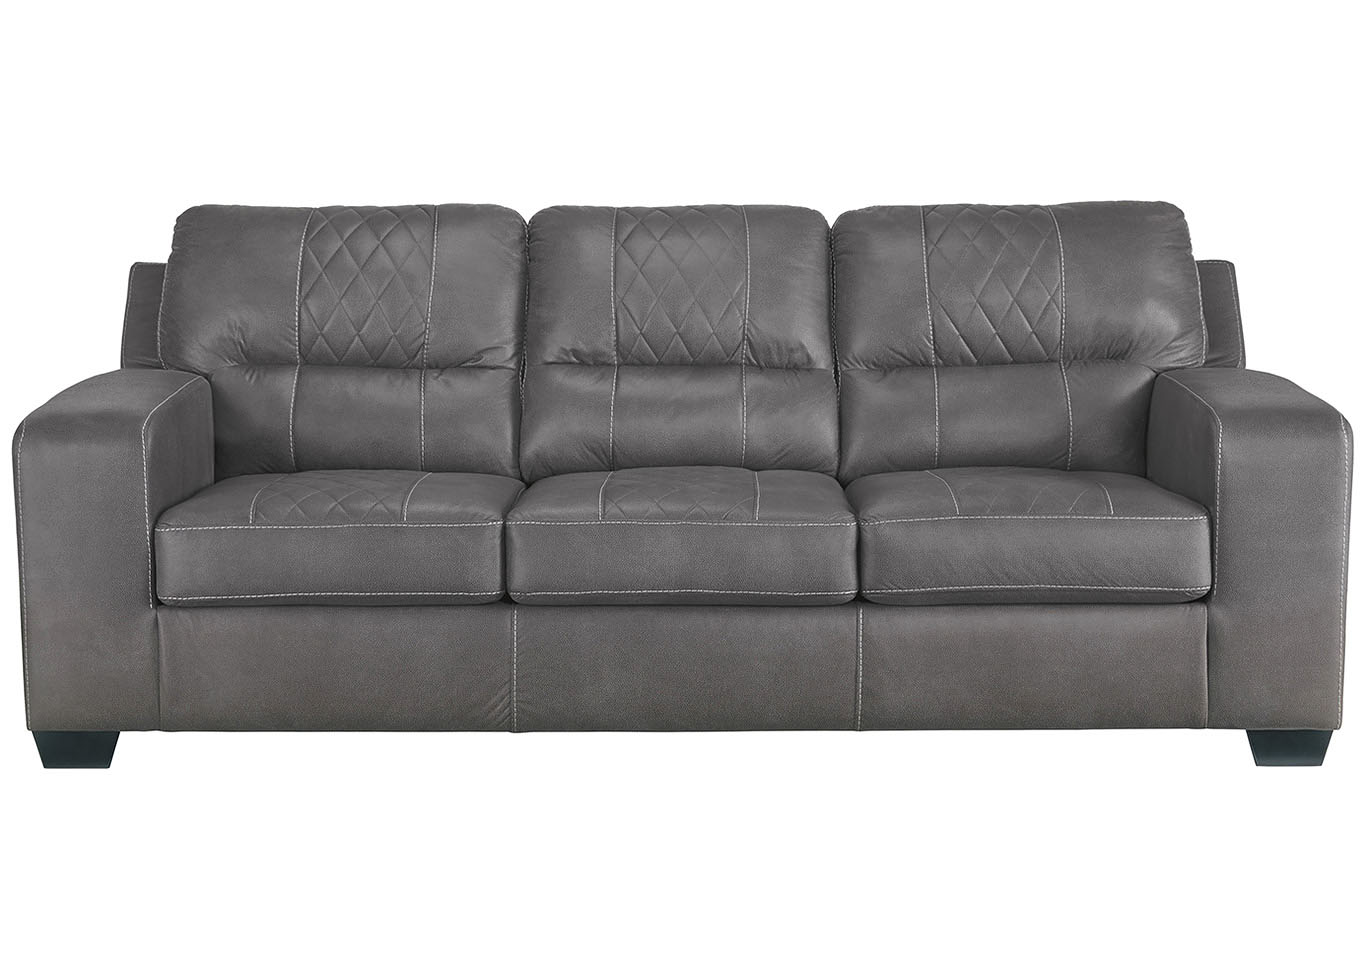 Narzole Dark Gray Sofa,Benchcraft